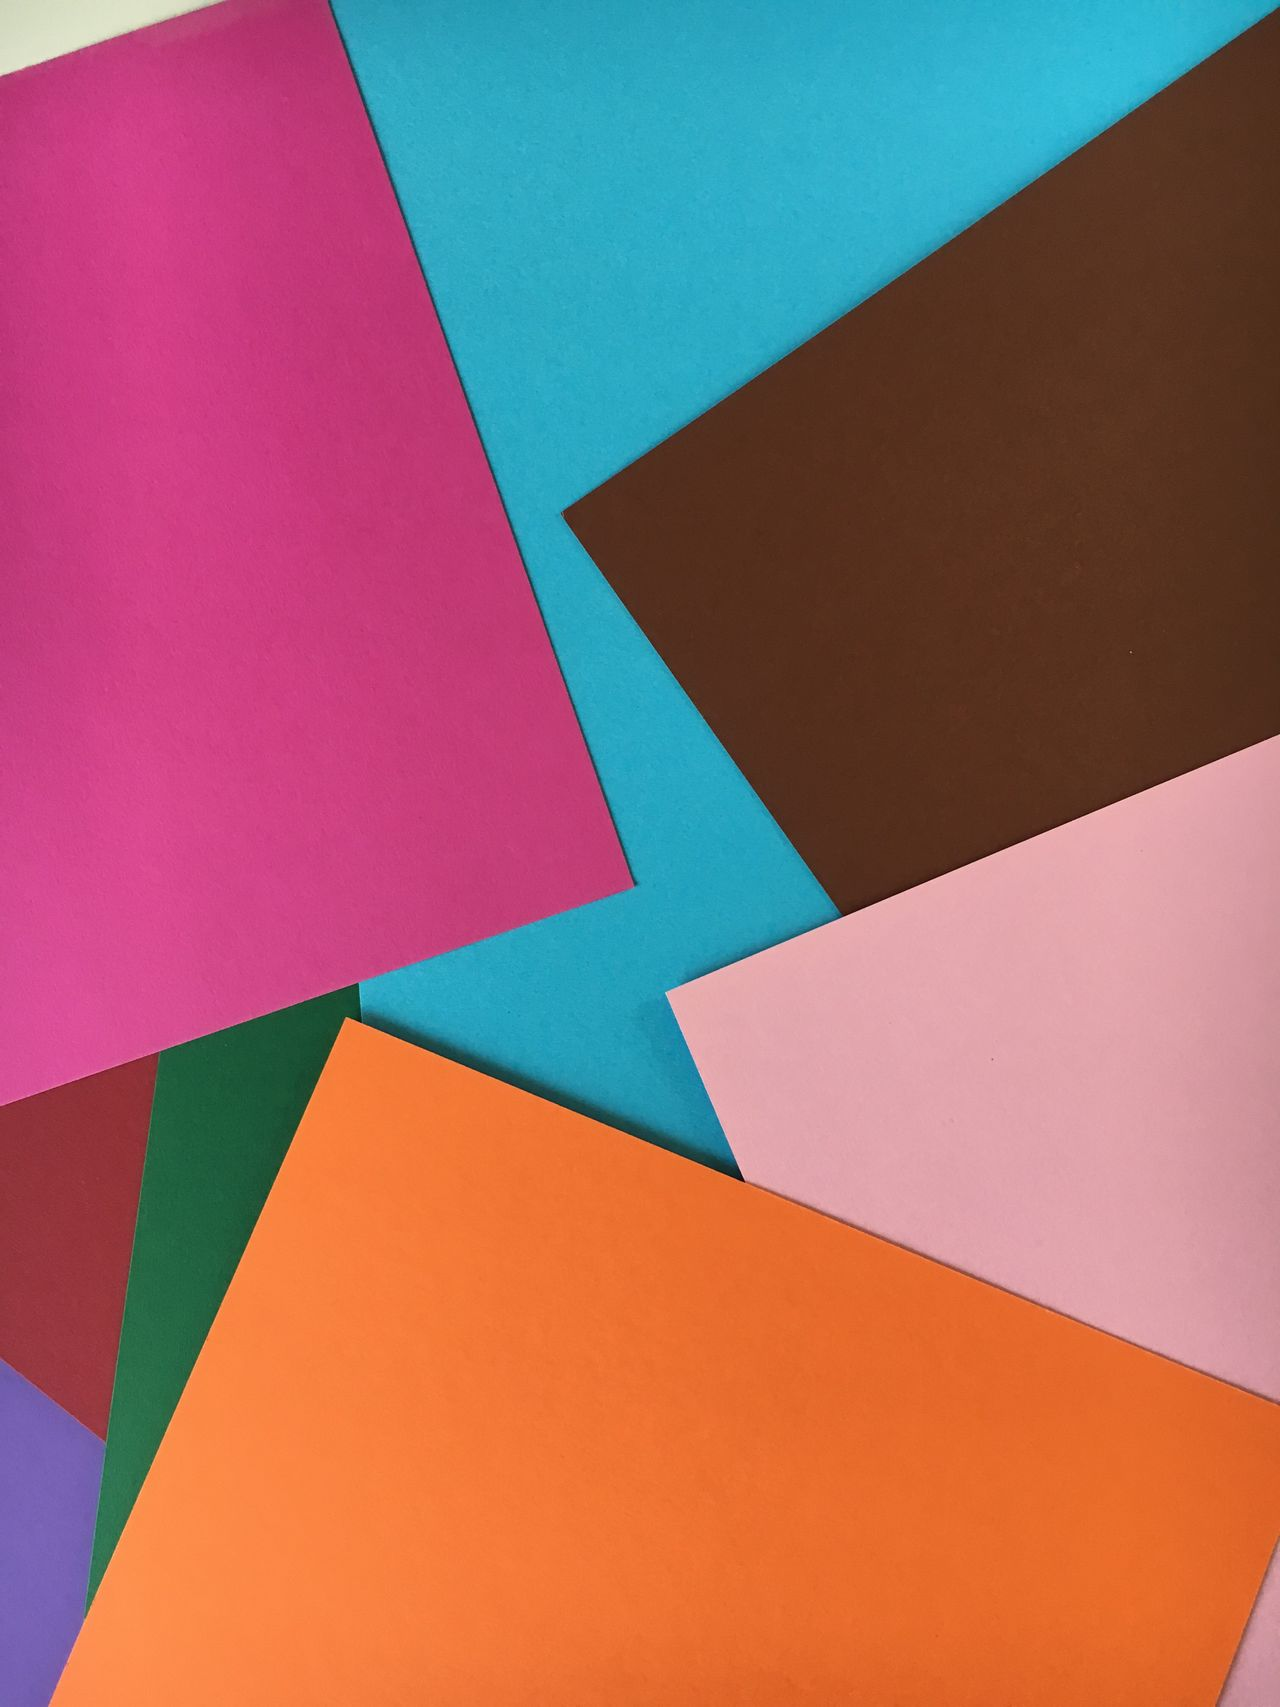 Multi Colored Low Angle View Paper Backgrounds No People Full Frame Close-up Day Outdoors Communication Pattern Tinker Built Structure Handcrafted Creative Creativity ArtWork Crafts Papers Pattern, Texture, Shape And Form Background Art, Drawing, Creativity Pattern Pieces Colorful Studio Shot